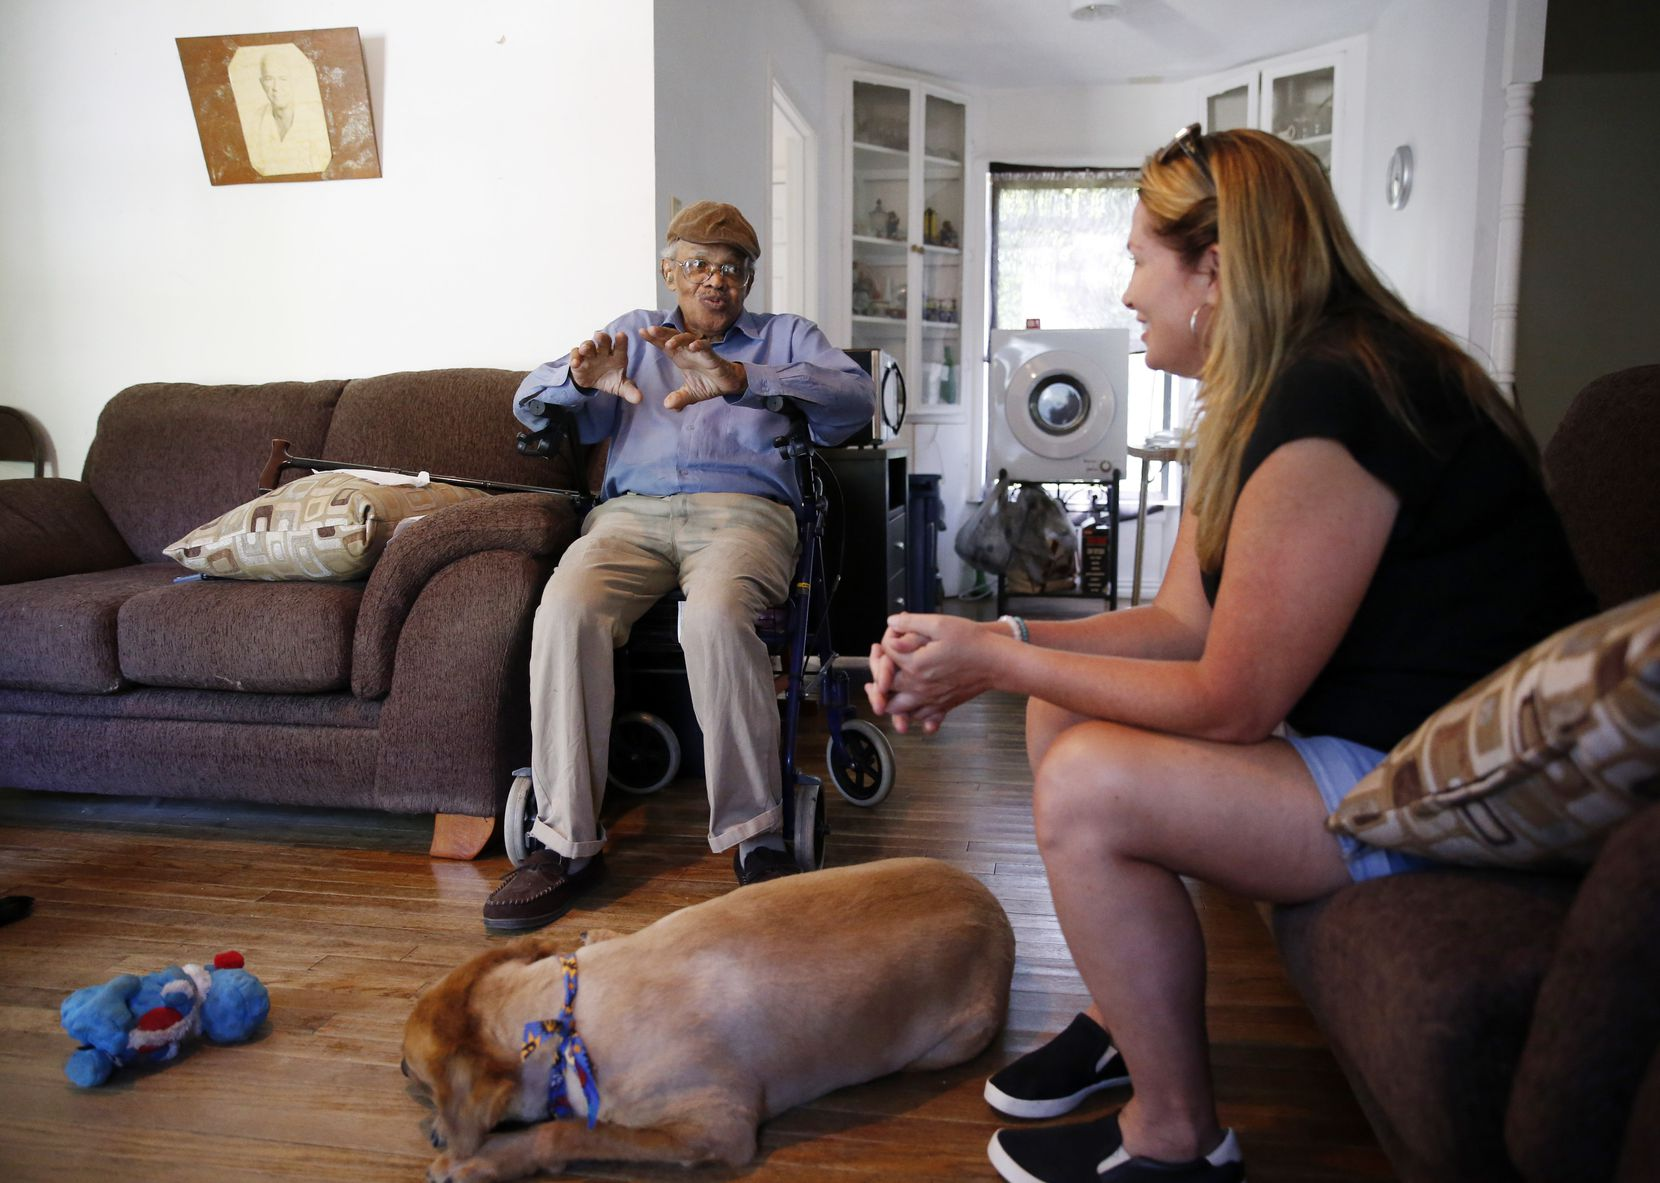 James Evans, 83, talks with Jeanne Marie Boyne (right), a volunteer for the Seniors' Pet Assistance Network as Renny rests on the floor at his home in Dallas, on Saturday, July 13, 2019.